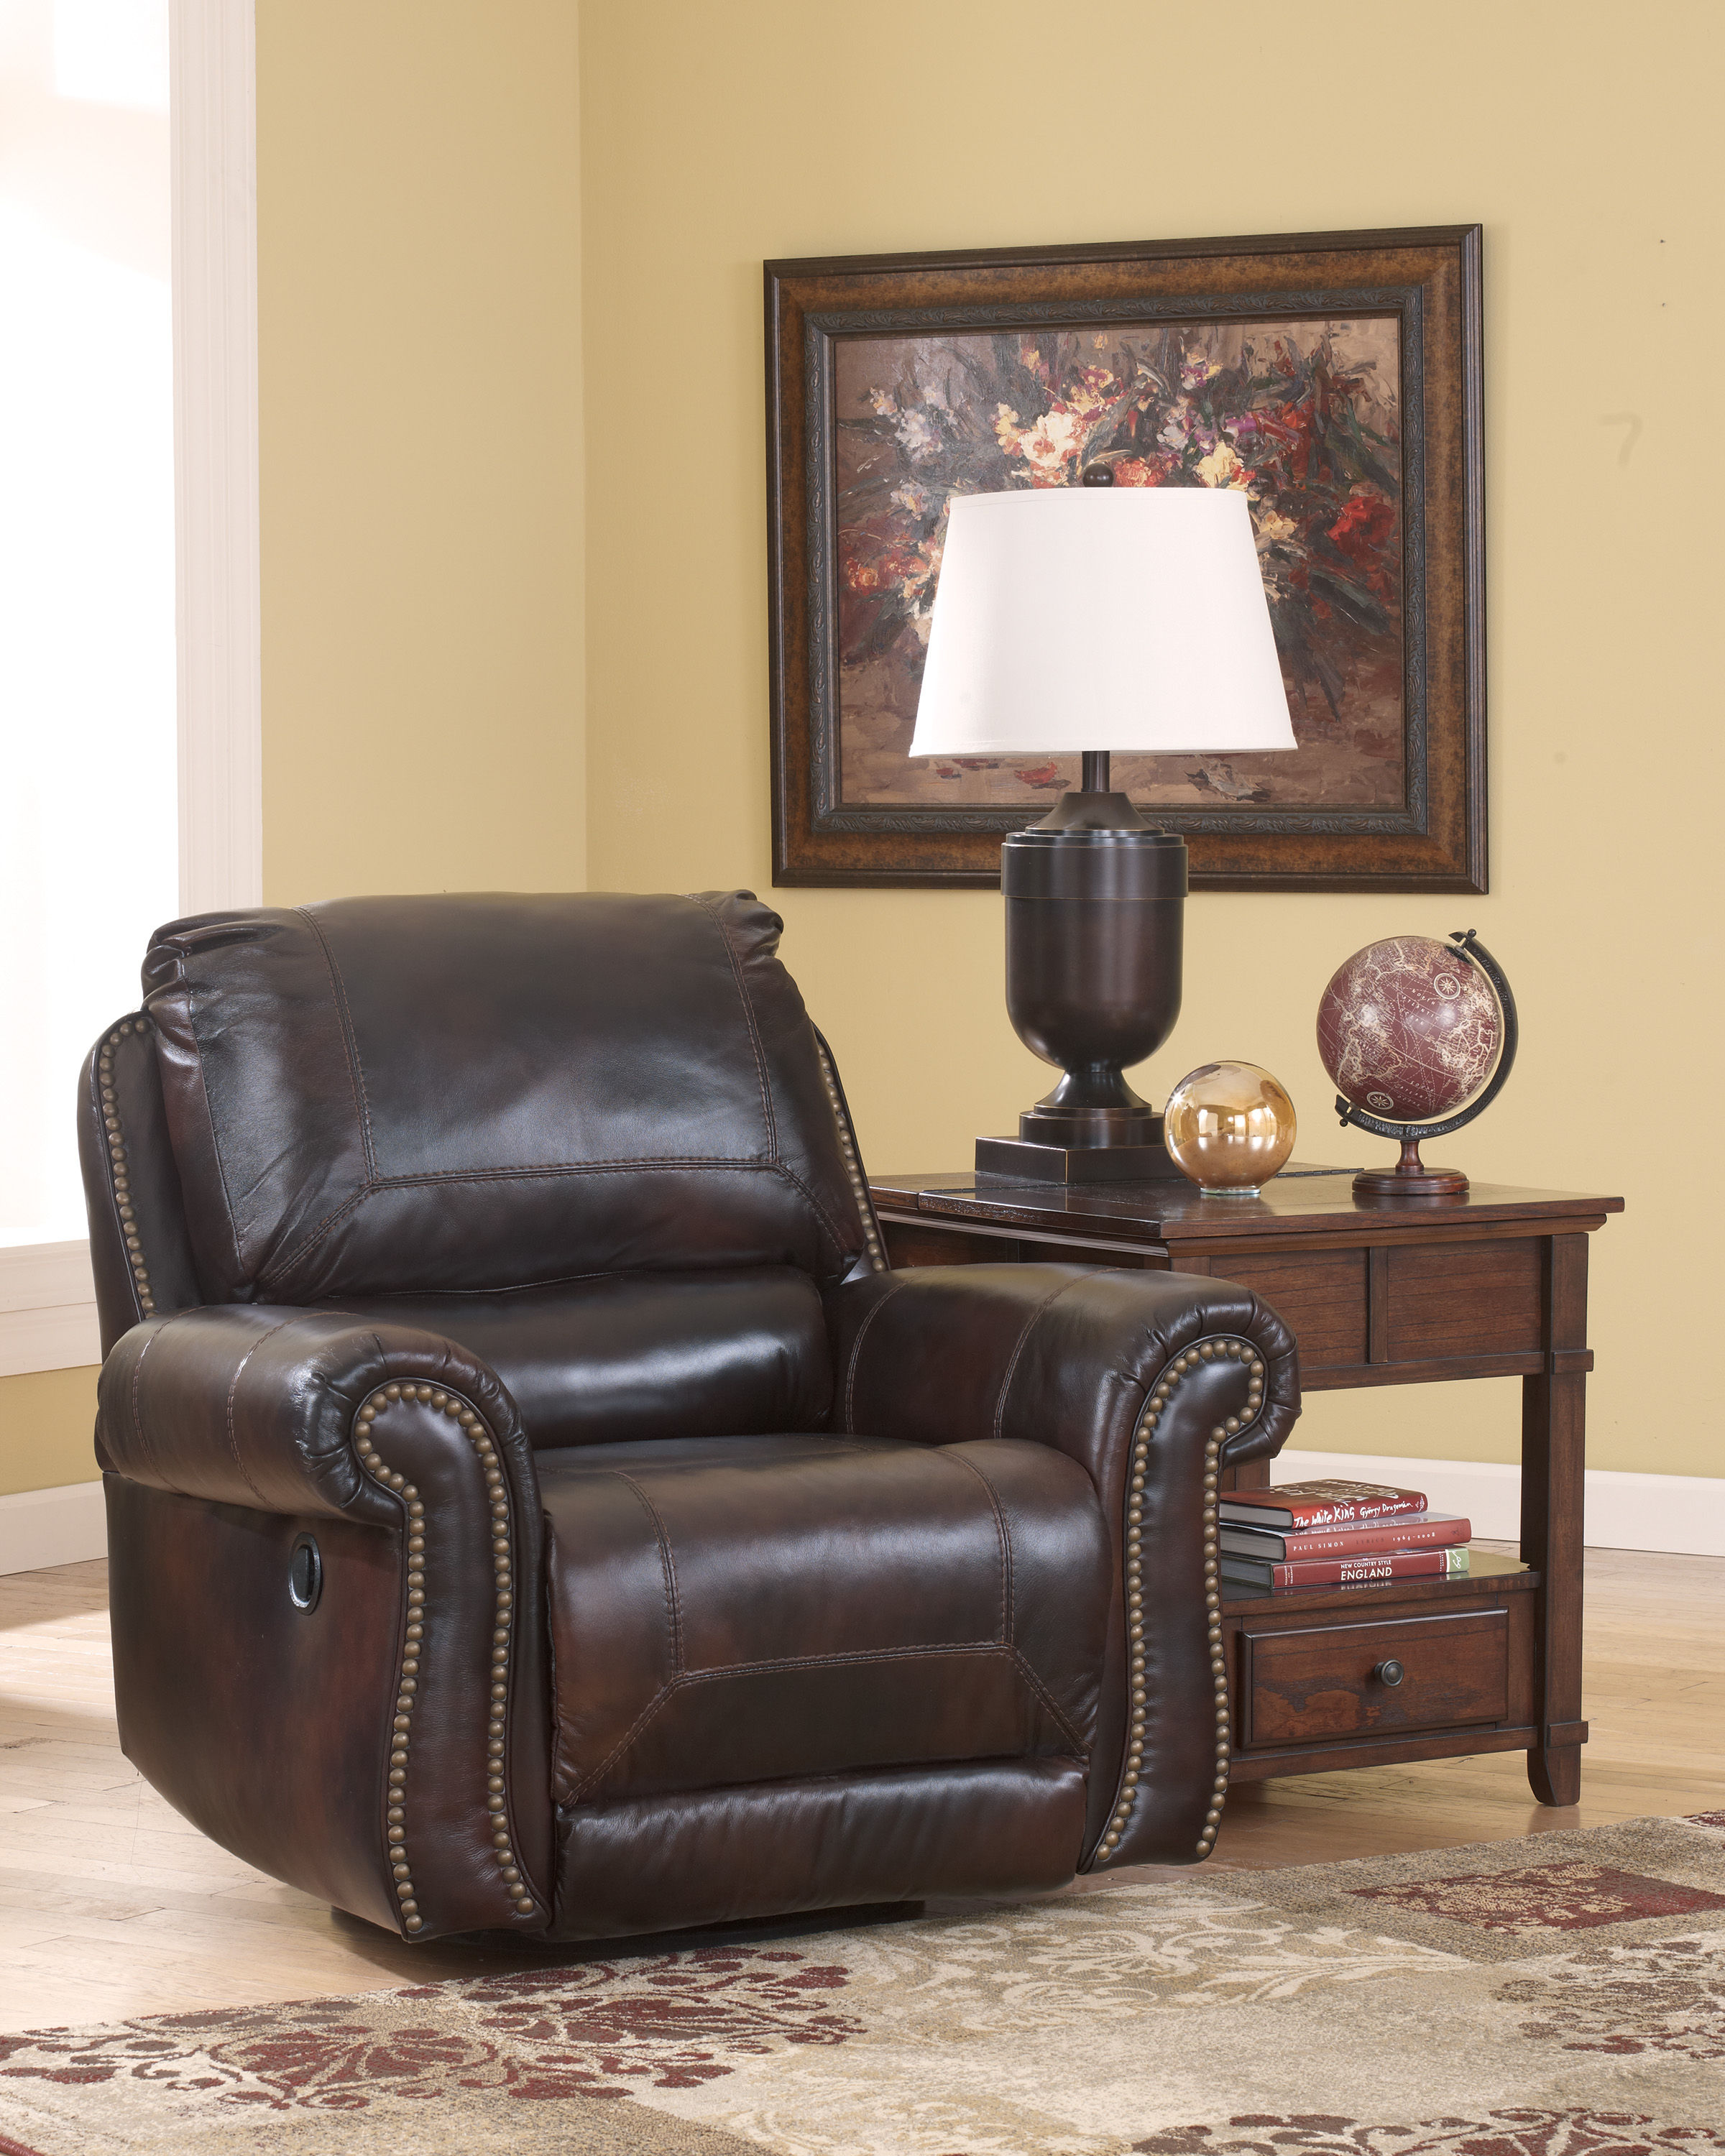 Dexpen - Saddle Swivel Glider Recliner Click To Enlarge ... & Dexpen - Saddle Swivel Glider Recliner | The Classy Home